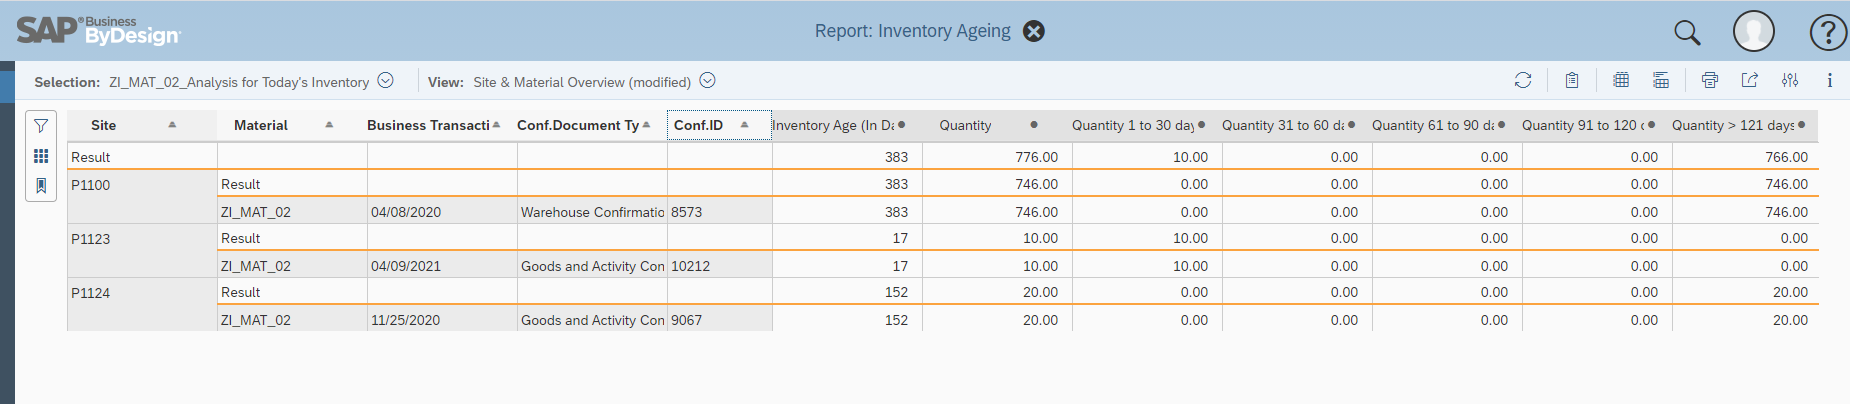 Inventory%20Ageing%20-%20Details